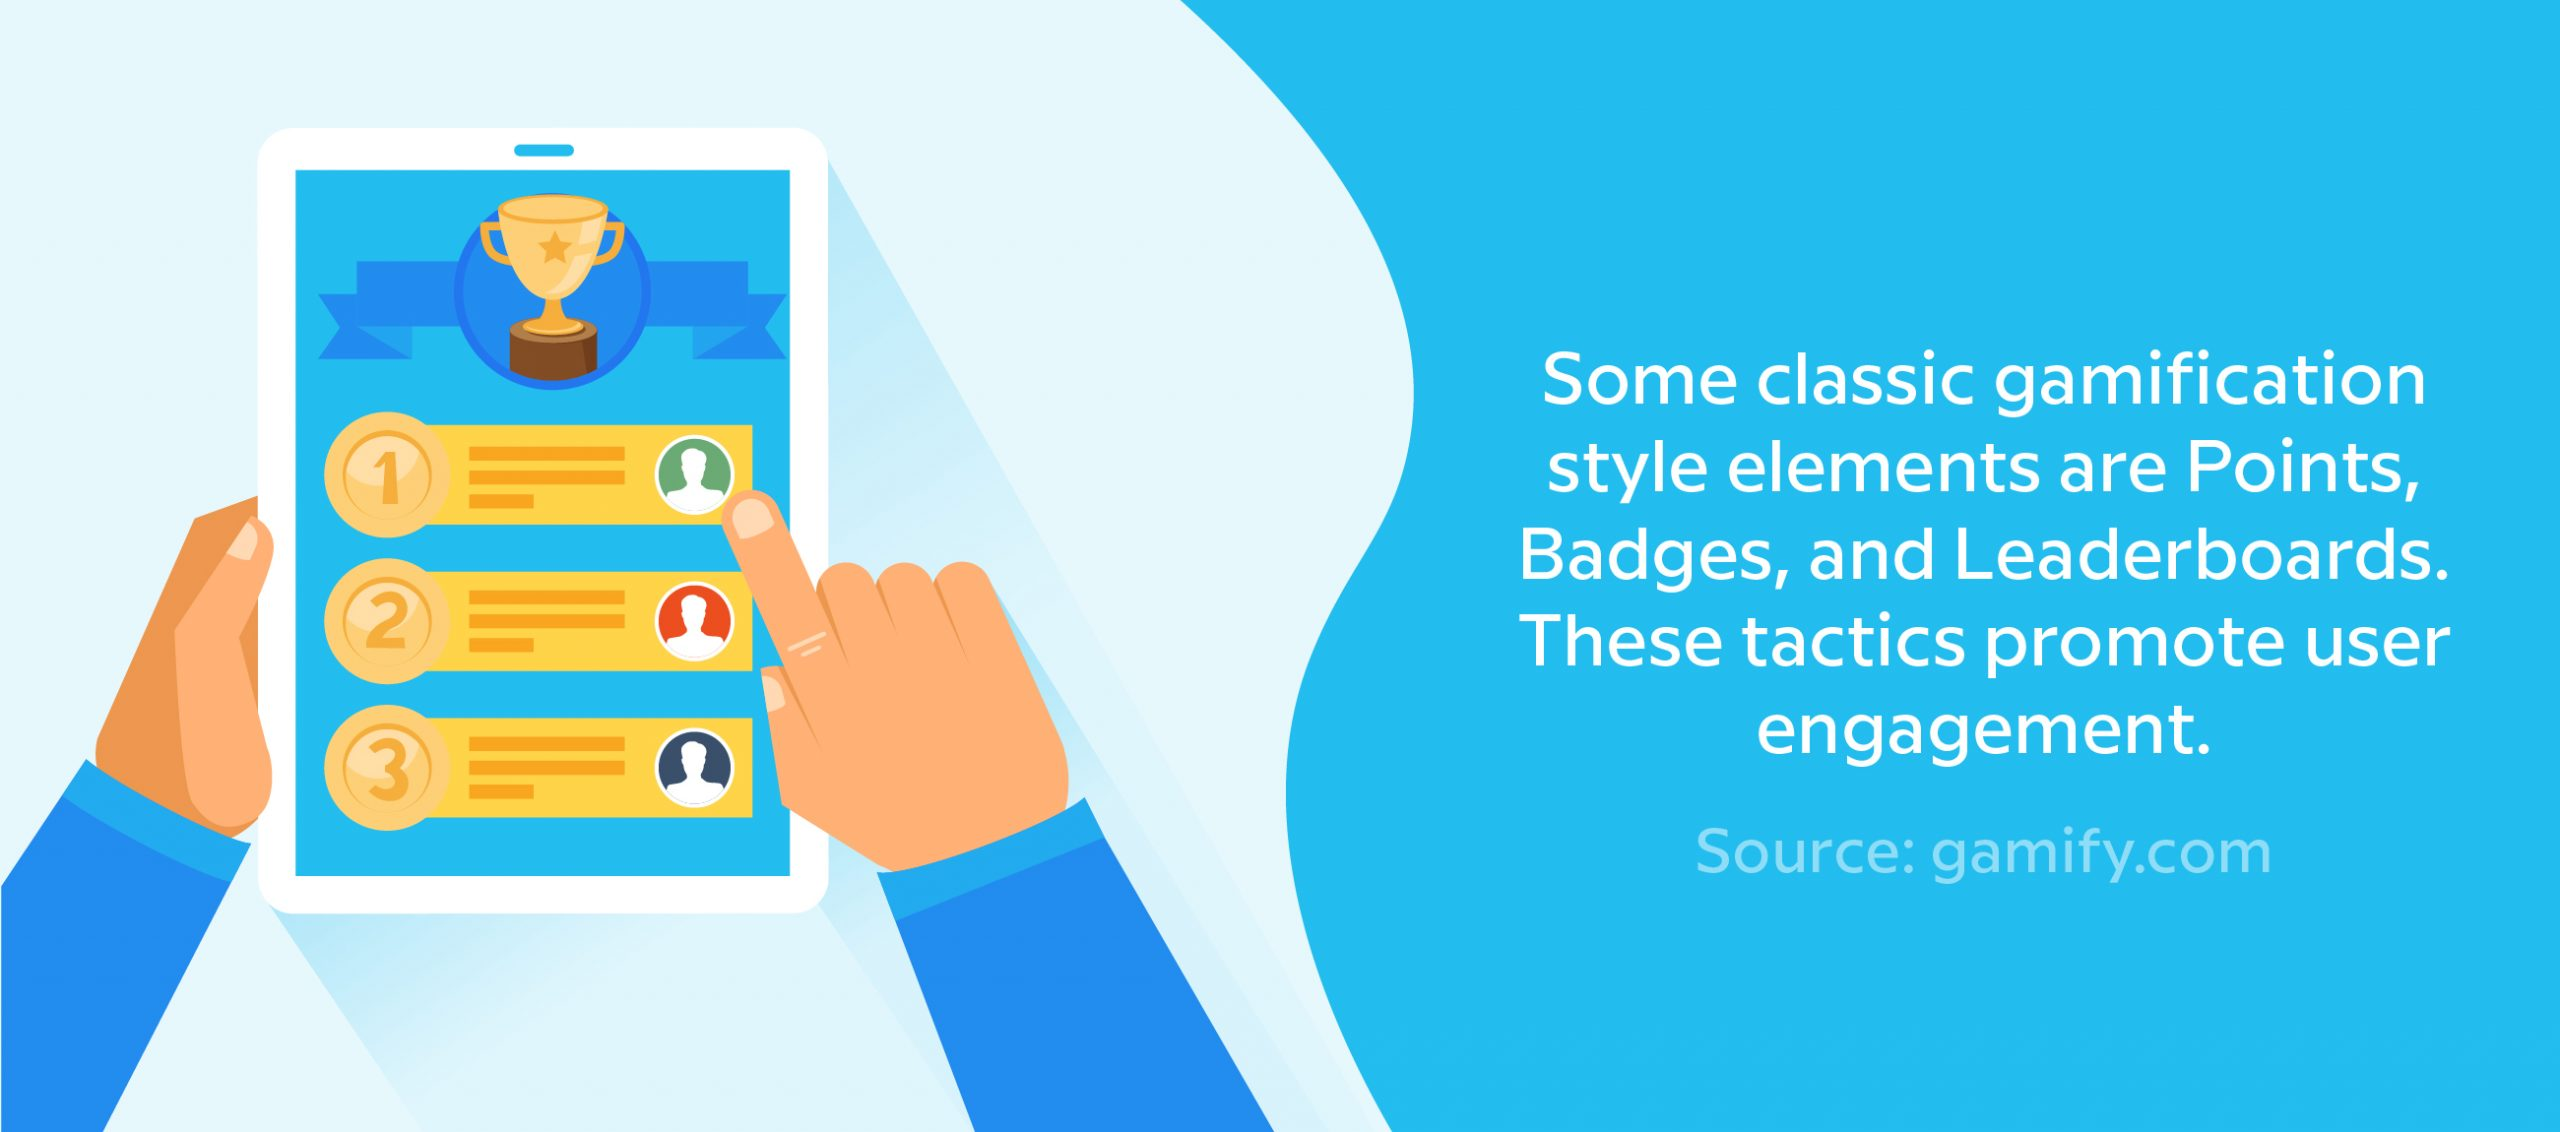 Some classic gamification style elements are Points, Badges, and Leaderboards. These tactics promote user engagement. Source: gamify.com